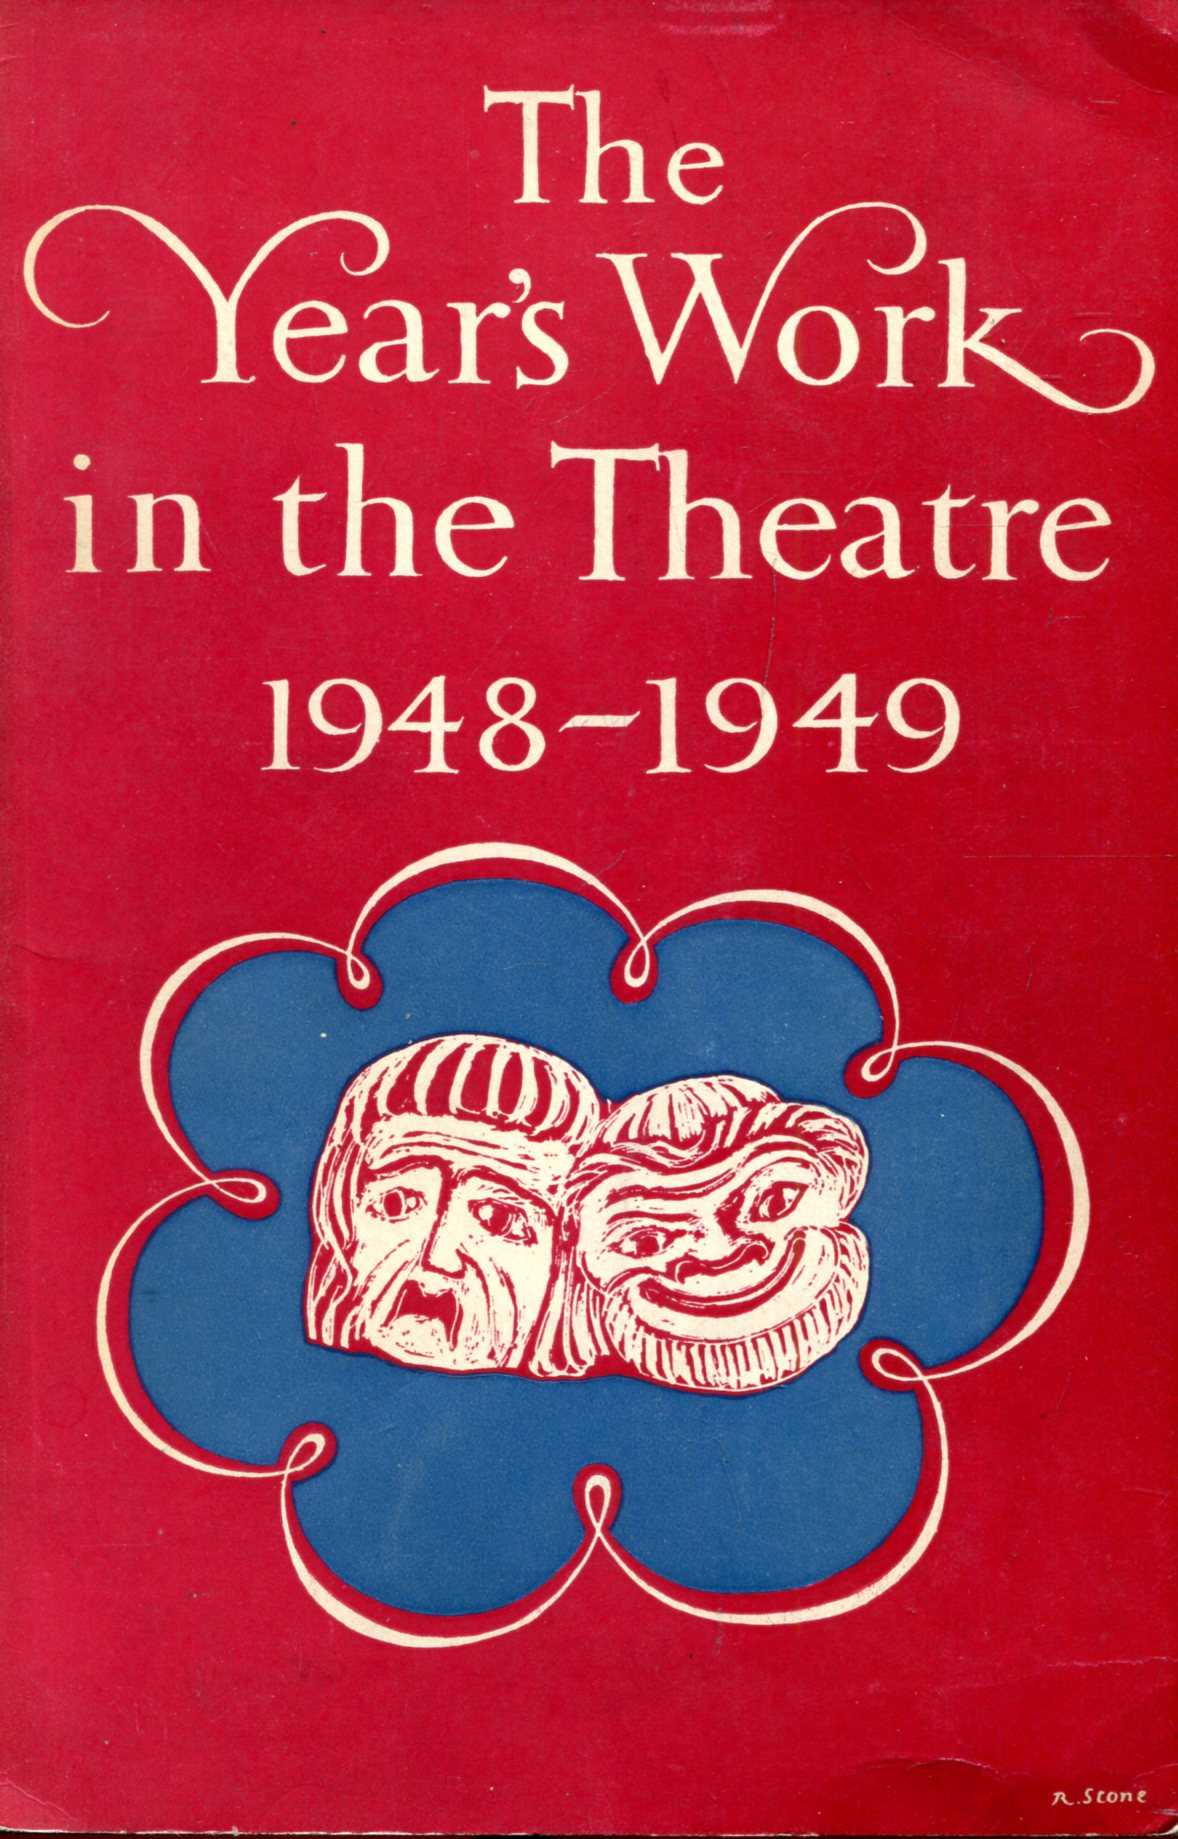 Image for The Year's Work in the Theatre 1948-1949